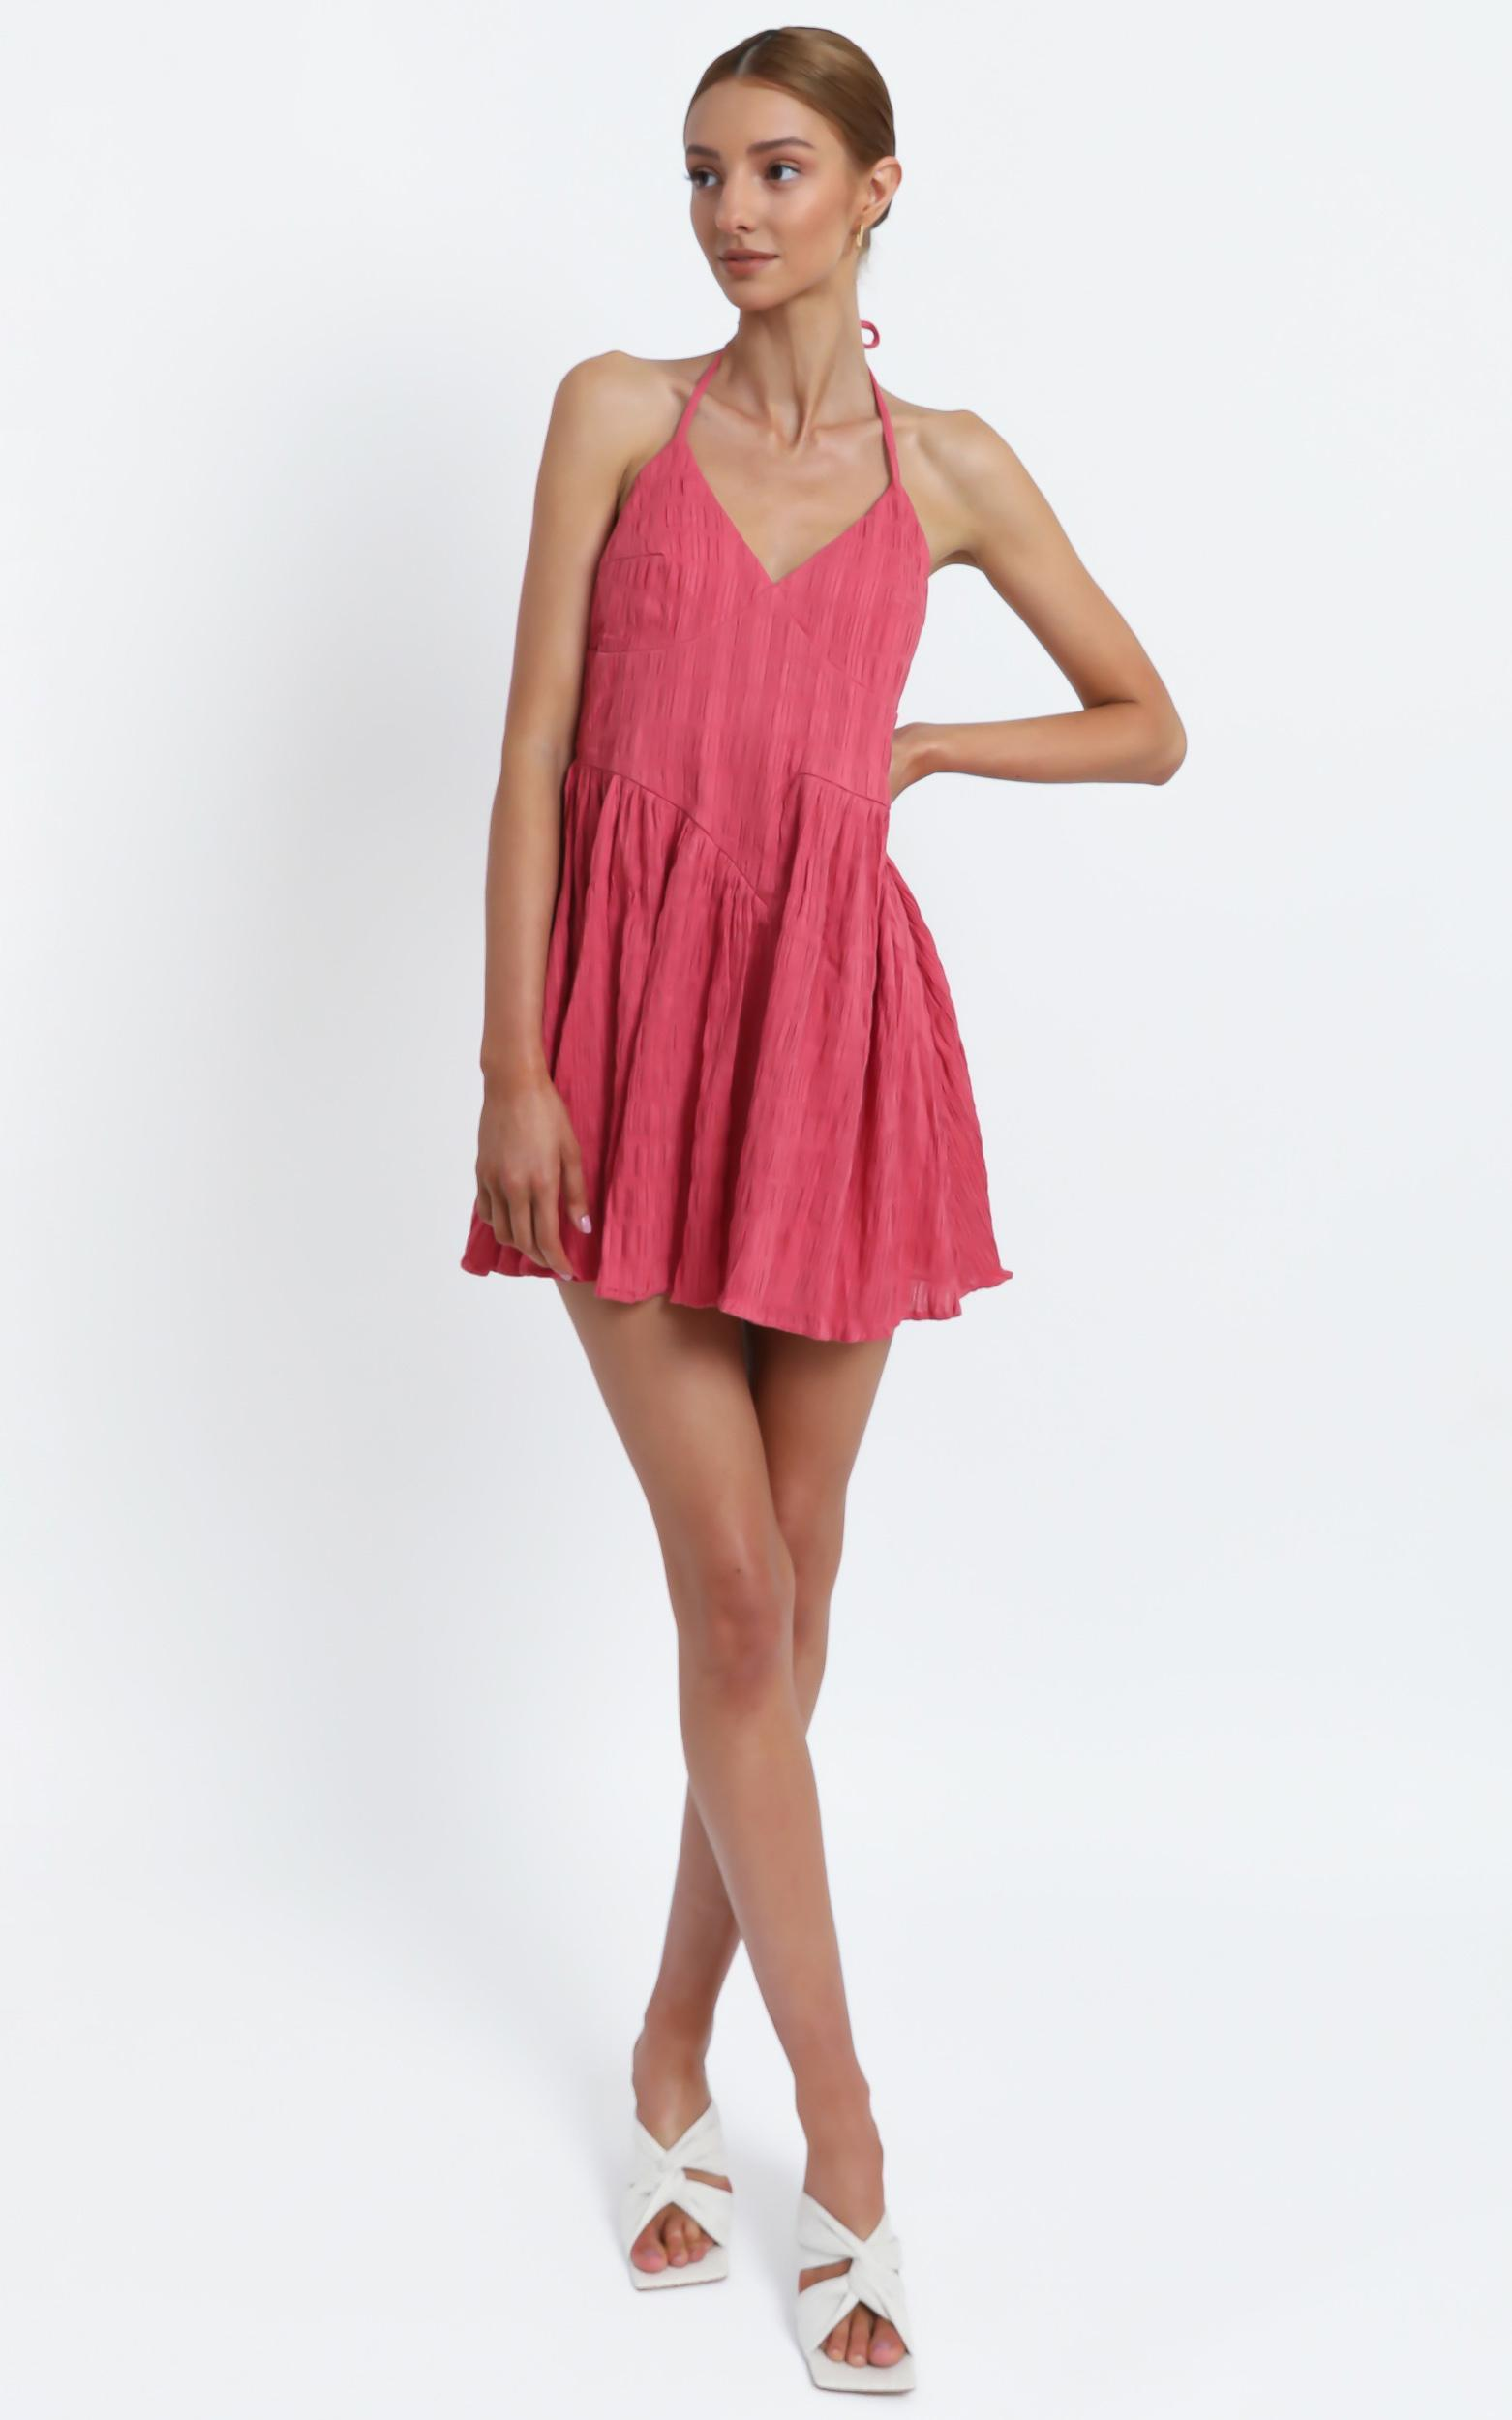 Mystic Dress in Watermelon - 16 (XXL), Pink, hi-res image number null